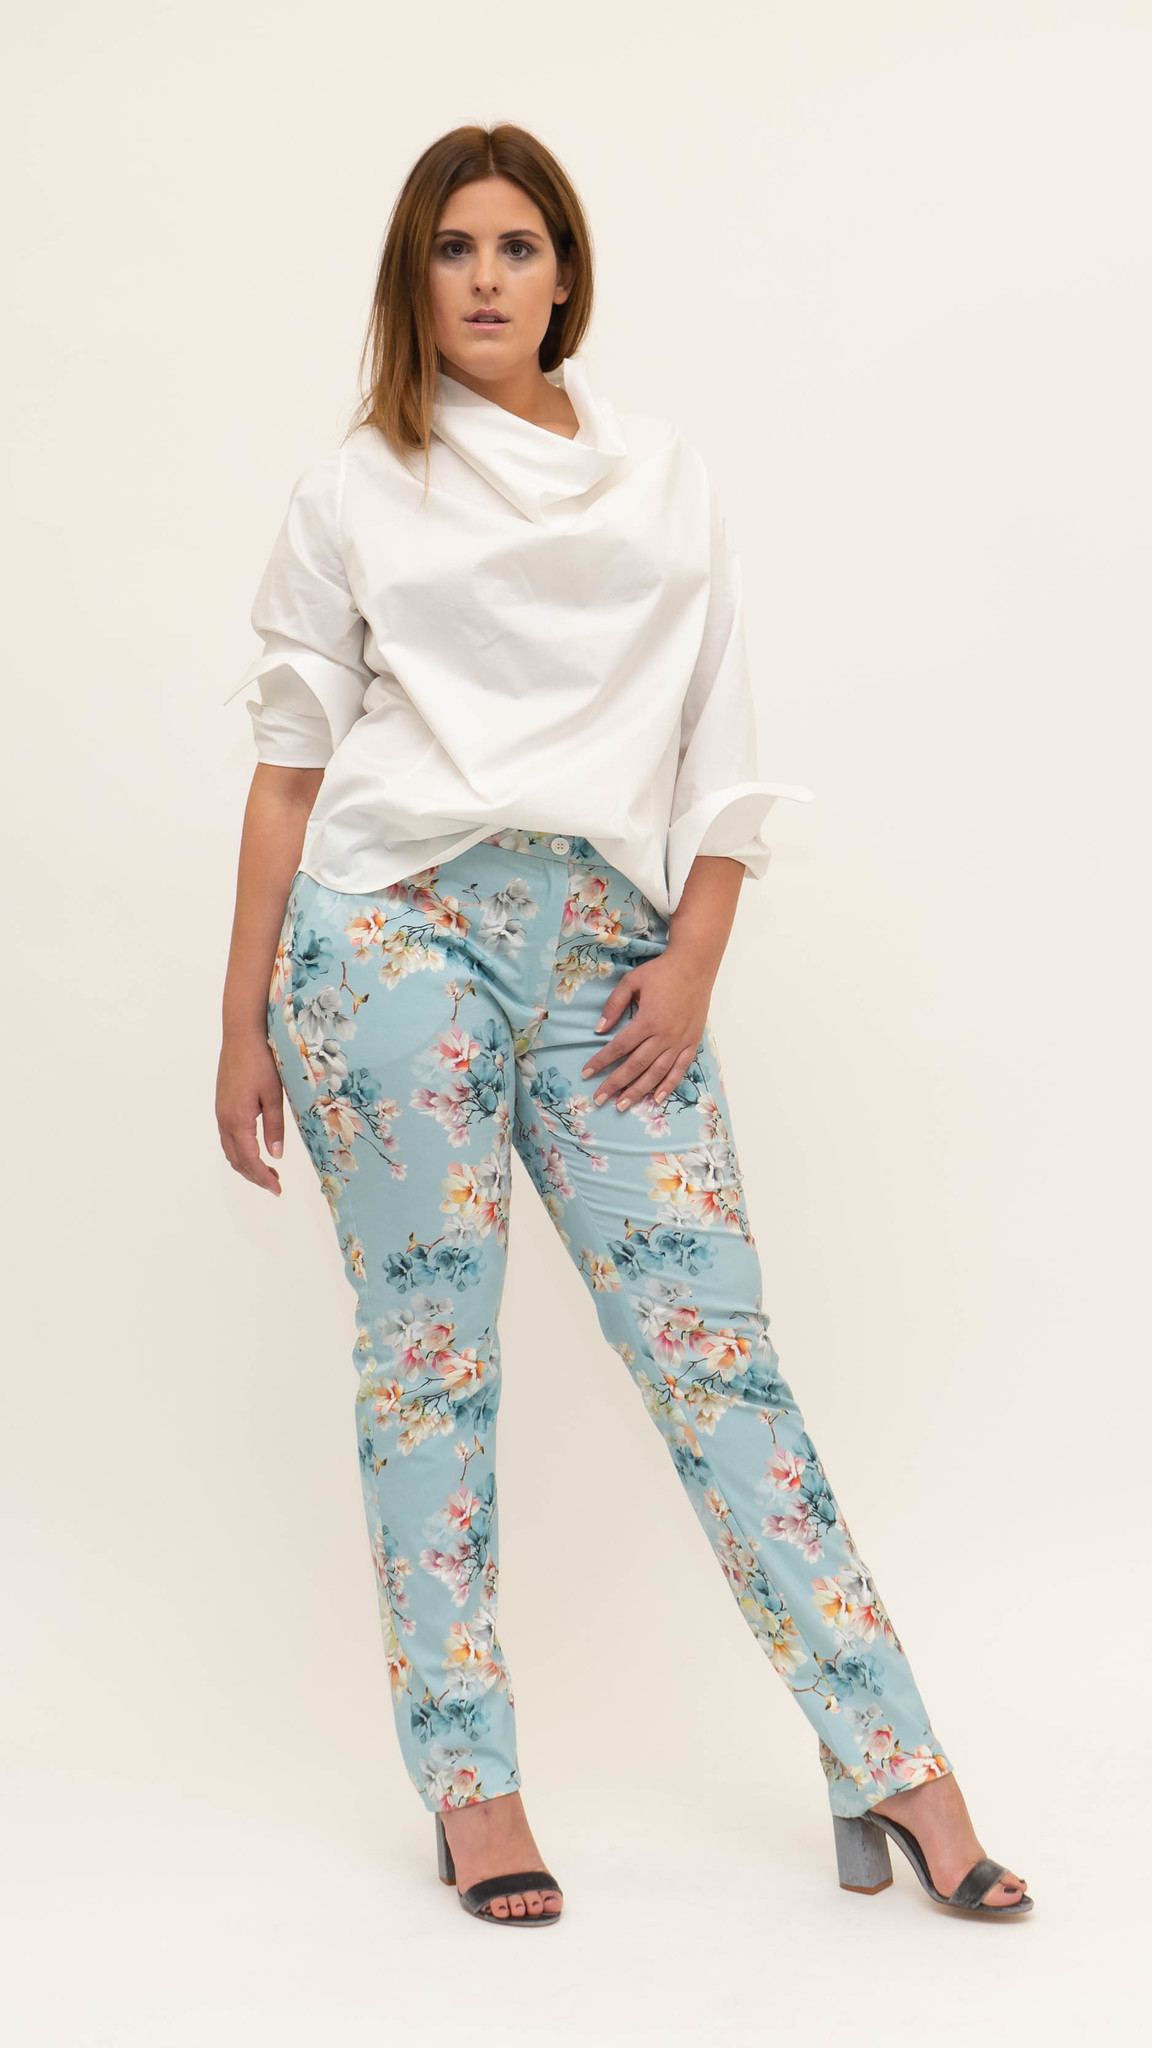 MAG Trouser in Cotton stretch-4